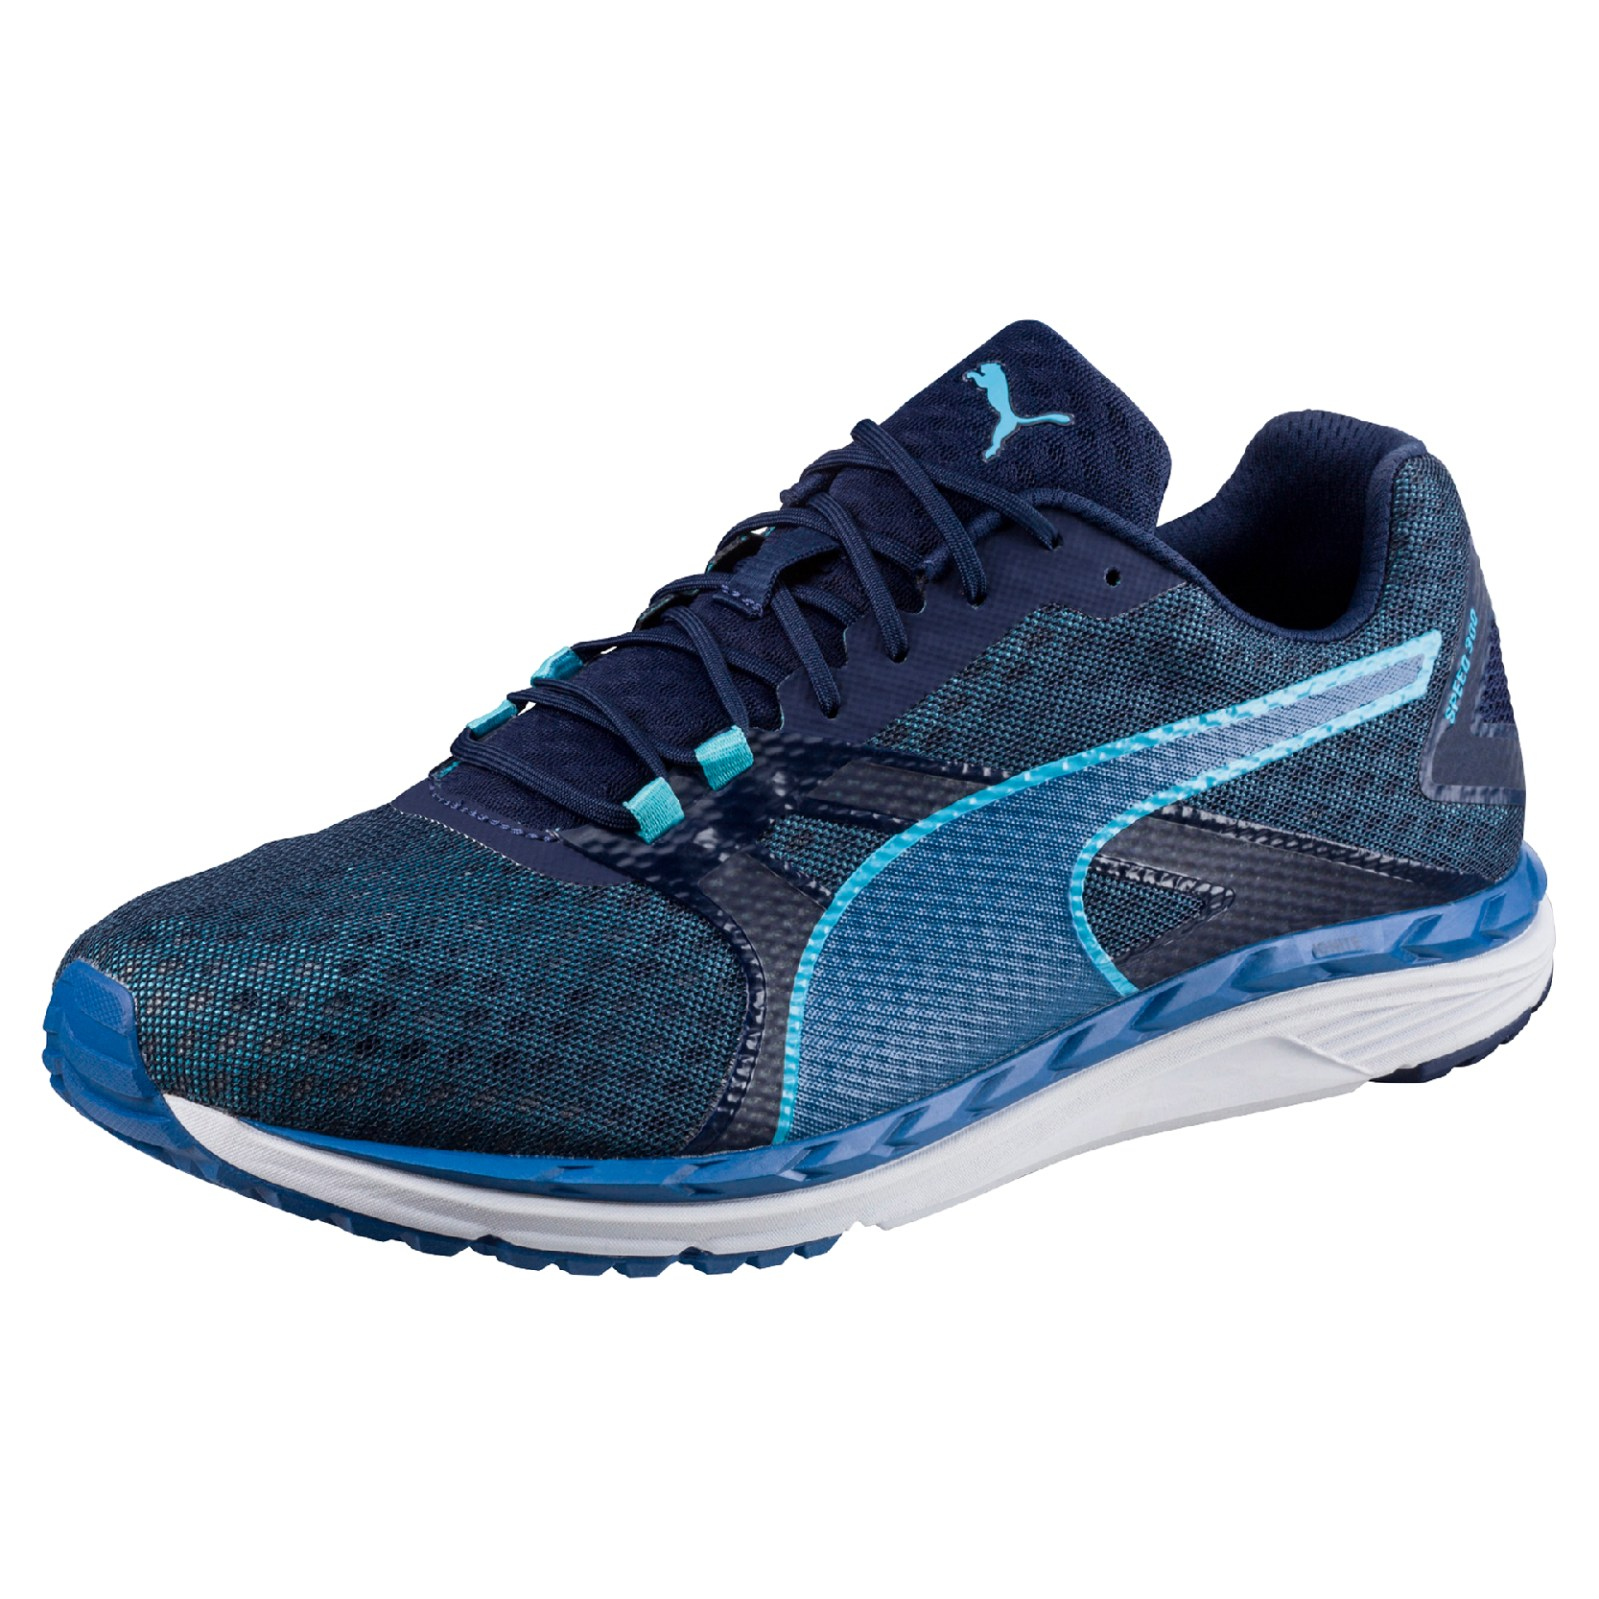 Wiggle Puma Speed 300 Ignite 2 Shoes Cushion Running Shoes